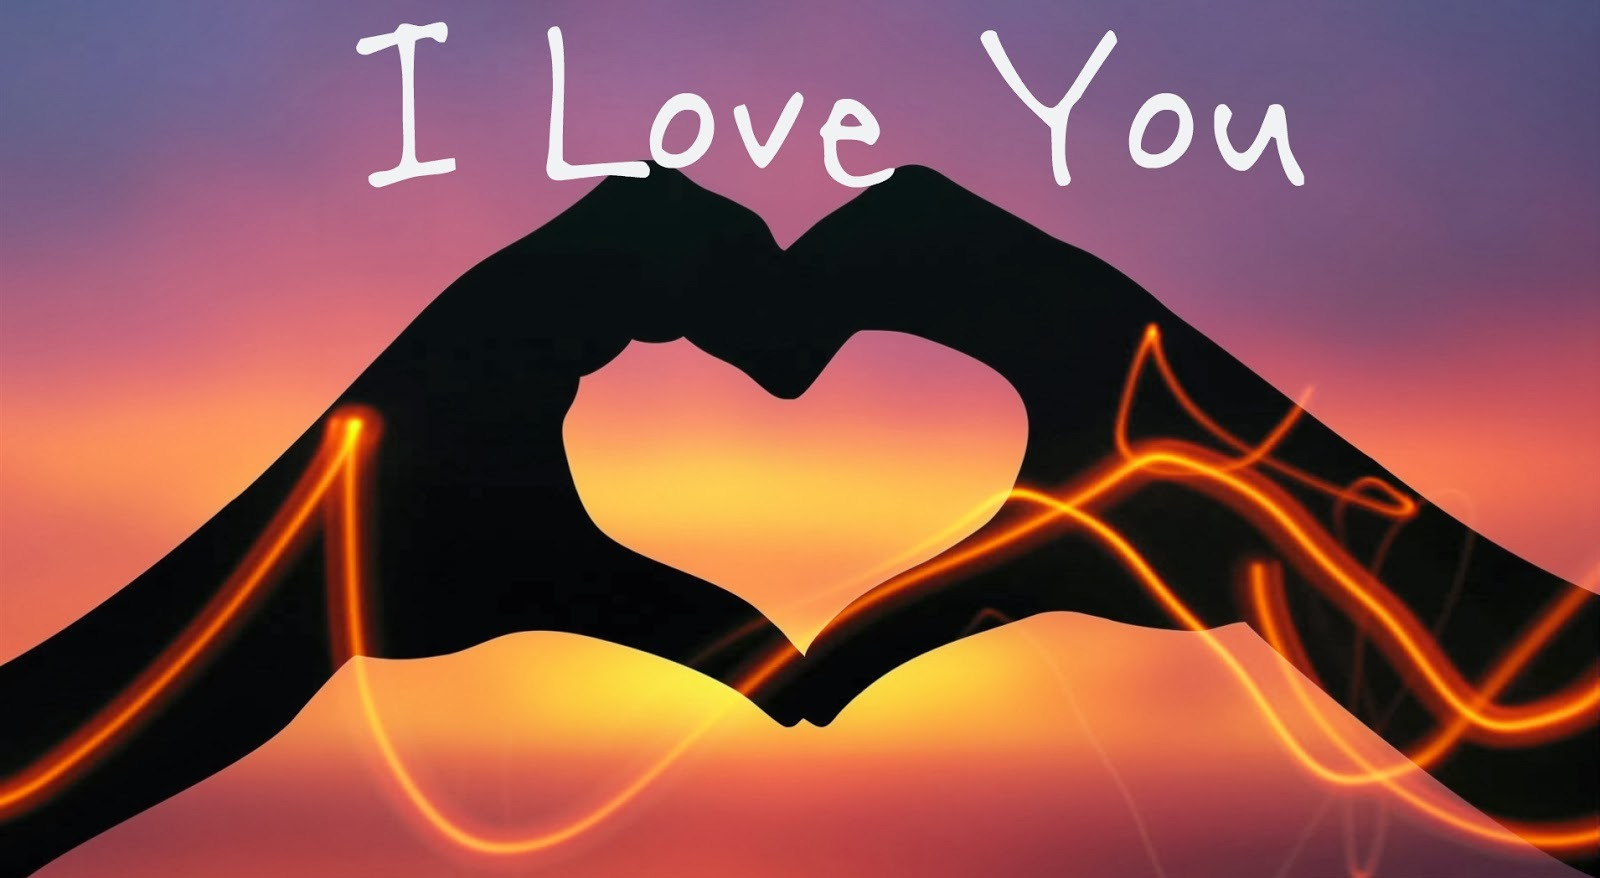 I Love You Wallpapers Pictures Images 1600x878